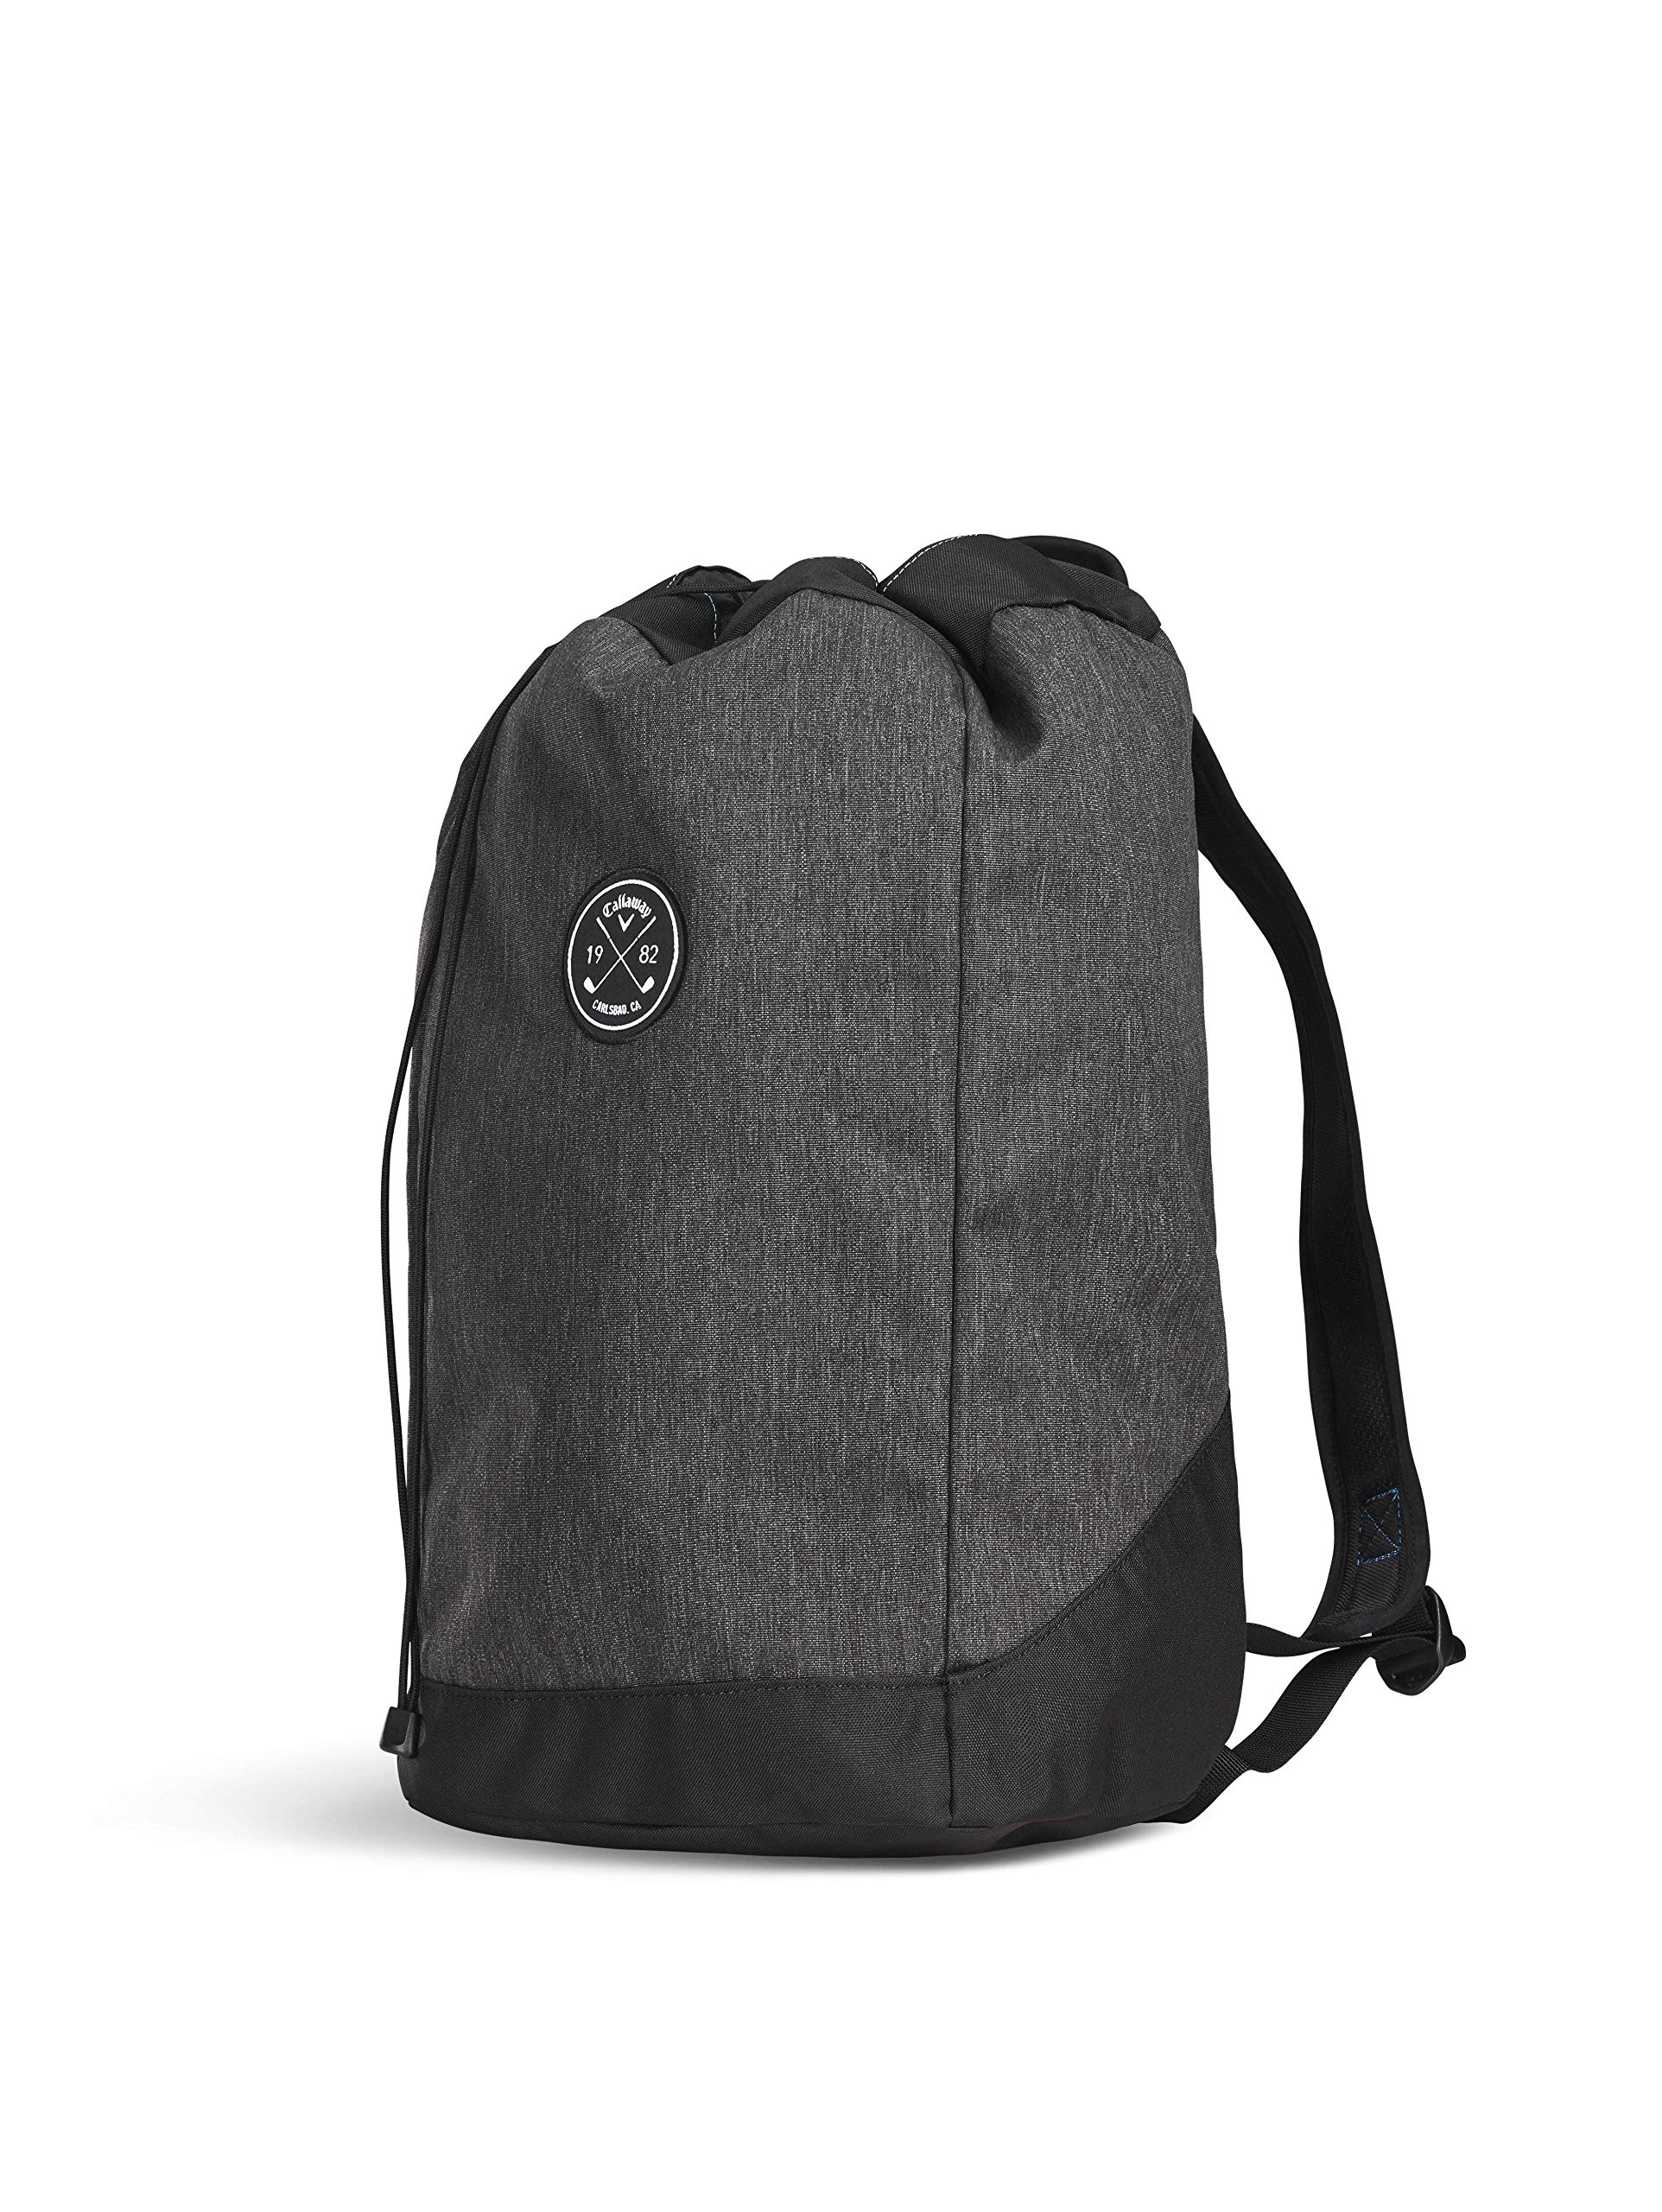 Callaway Men's Clubhouse Backpack, Black, One Size Callaway Padded Laptop Sleeve Comfort Grip Handle Interior Mesh Pocket with Key Clip 3